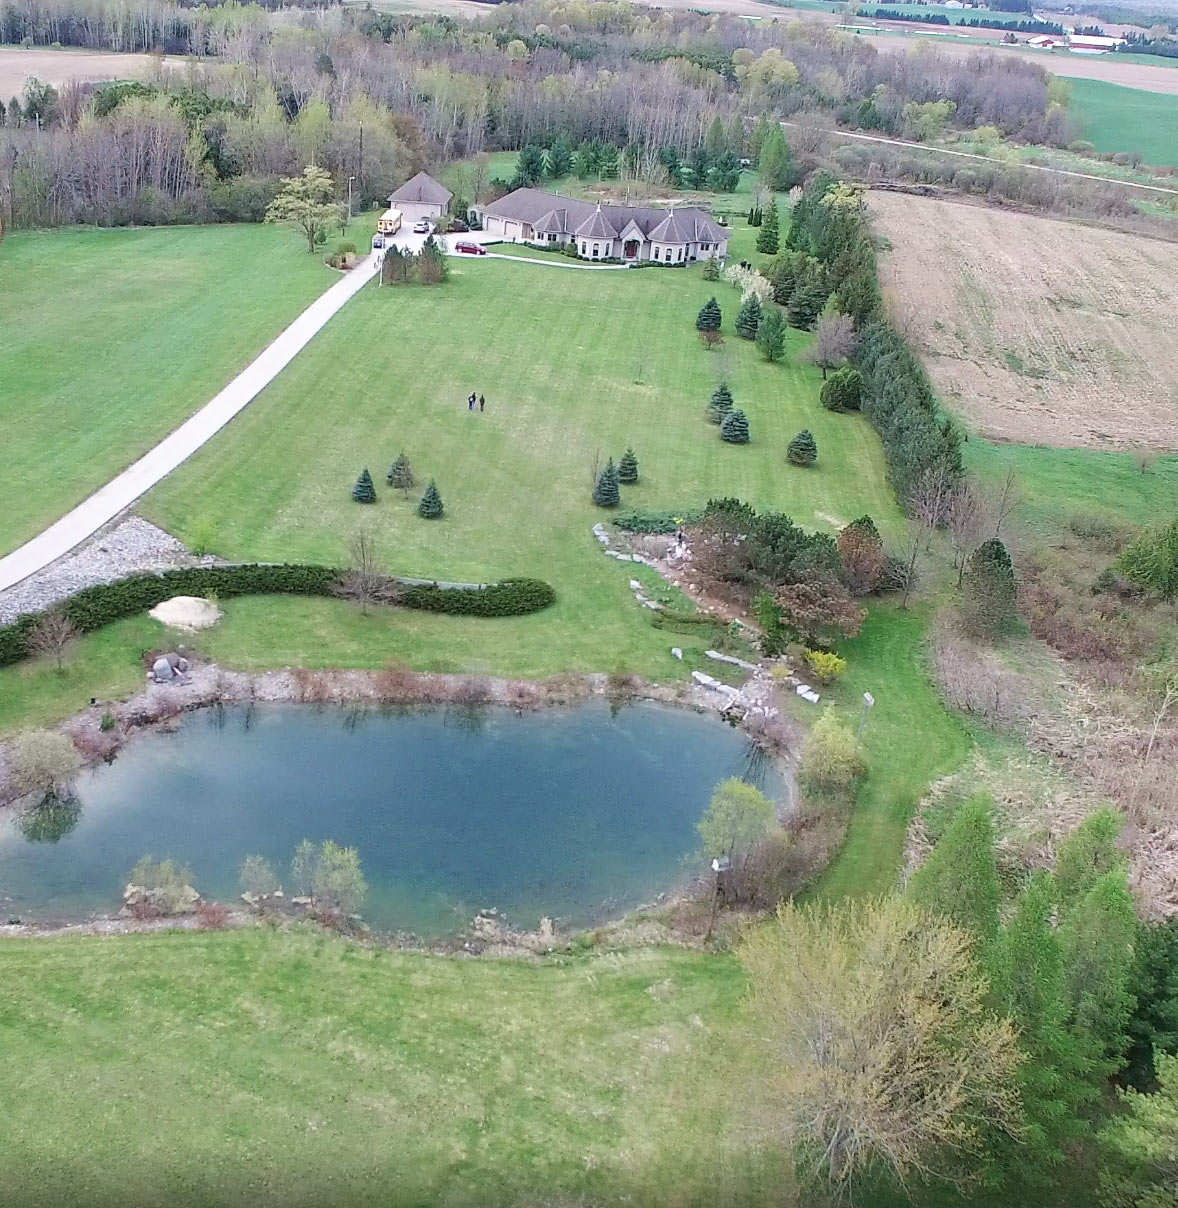 Aerial view of the 12-acre property at Huron Hospice. The memorial forest will be established in the back 6 acres of land that is currently meadow and natural marsh environment.